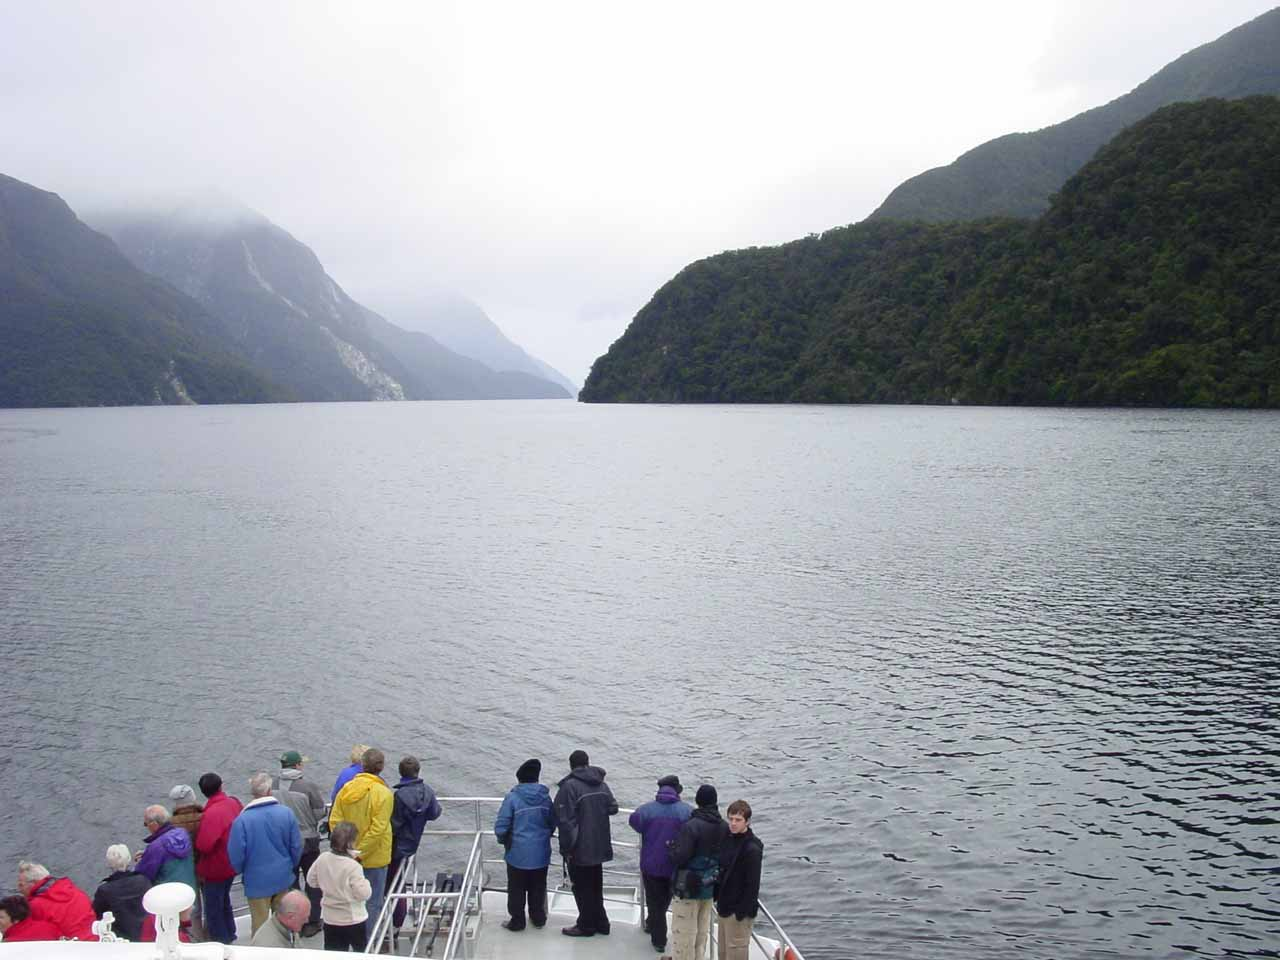 Looking towards the front of the vessel where dozens of people braved the frigid cold temperatures and wind chill to fully experience the Doubtful Sound